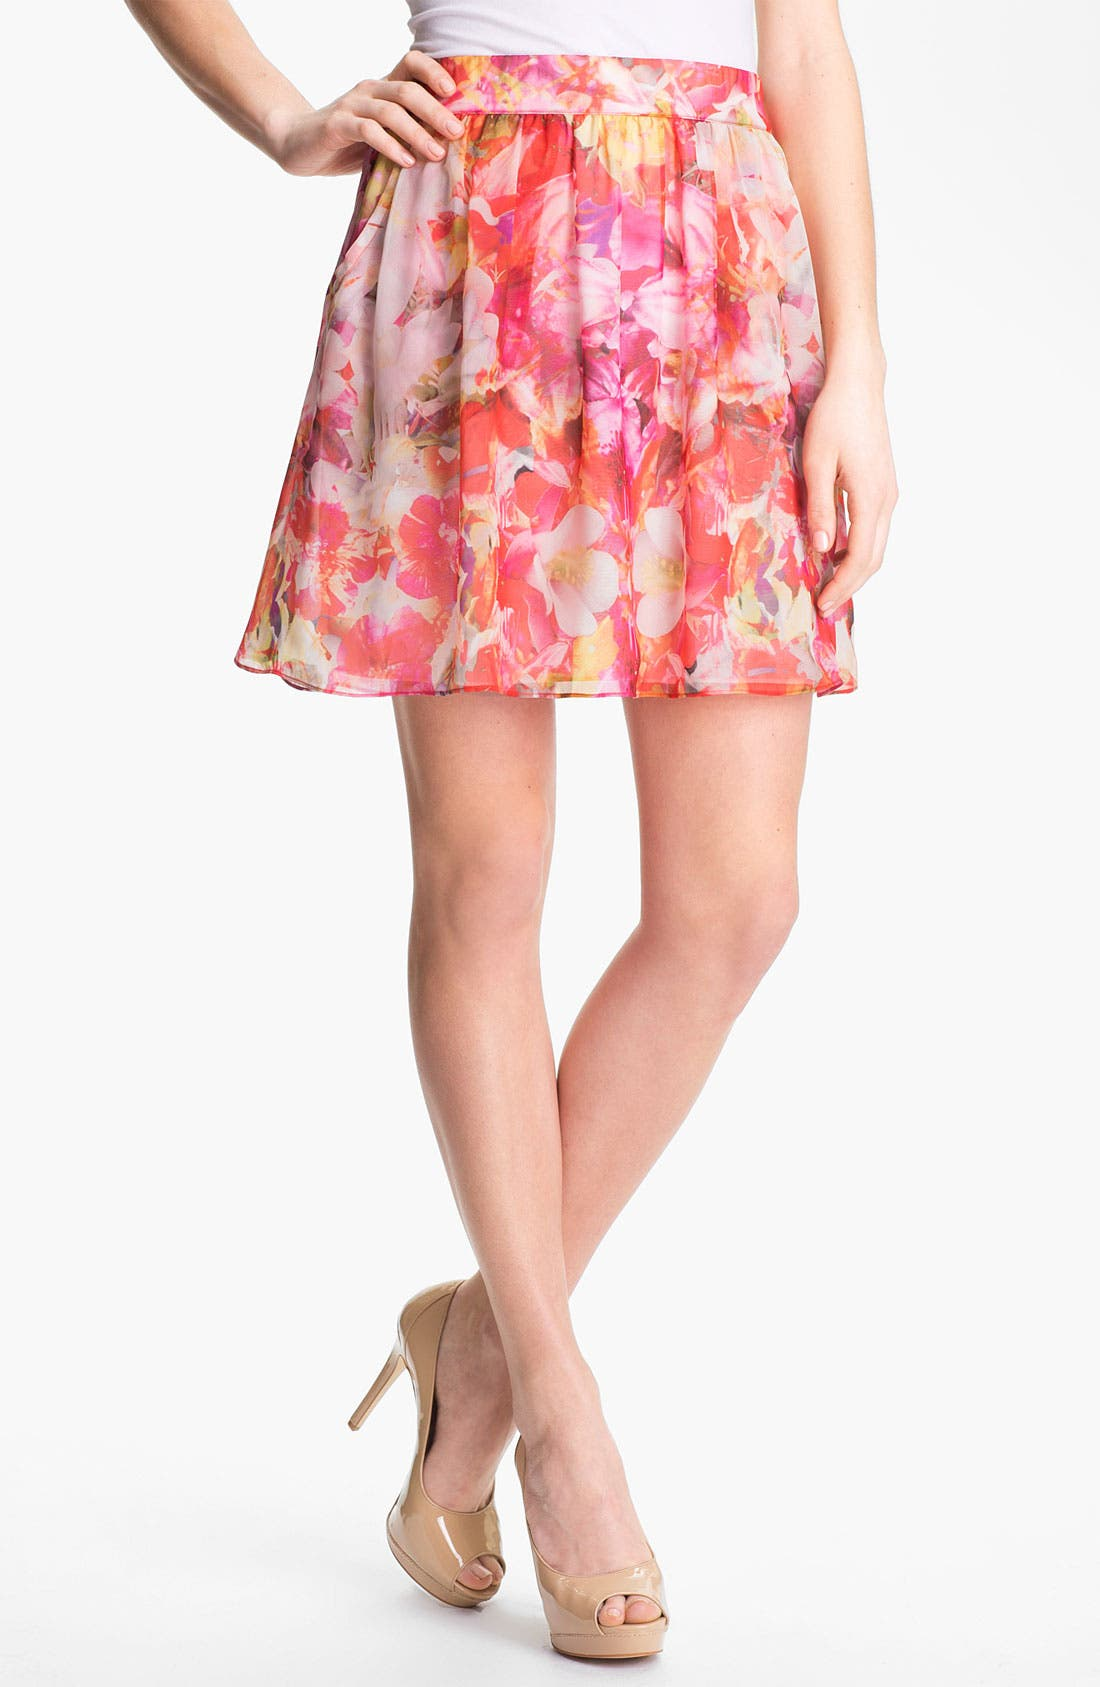 Alternate Image 1 Selected - Vince Camuto 'Corsage Floral' A-Line Skirt